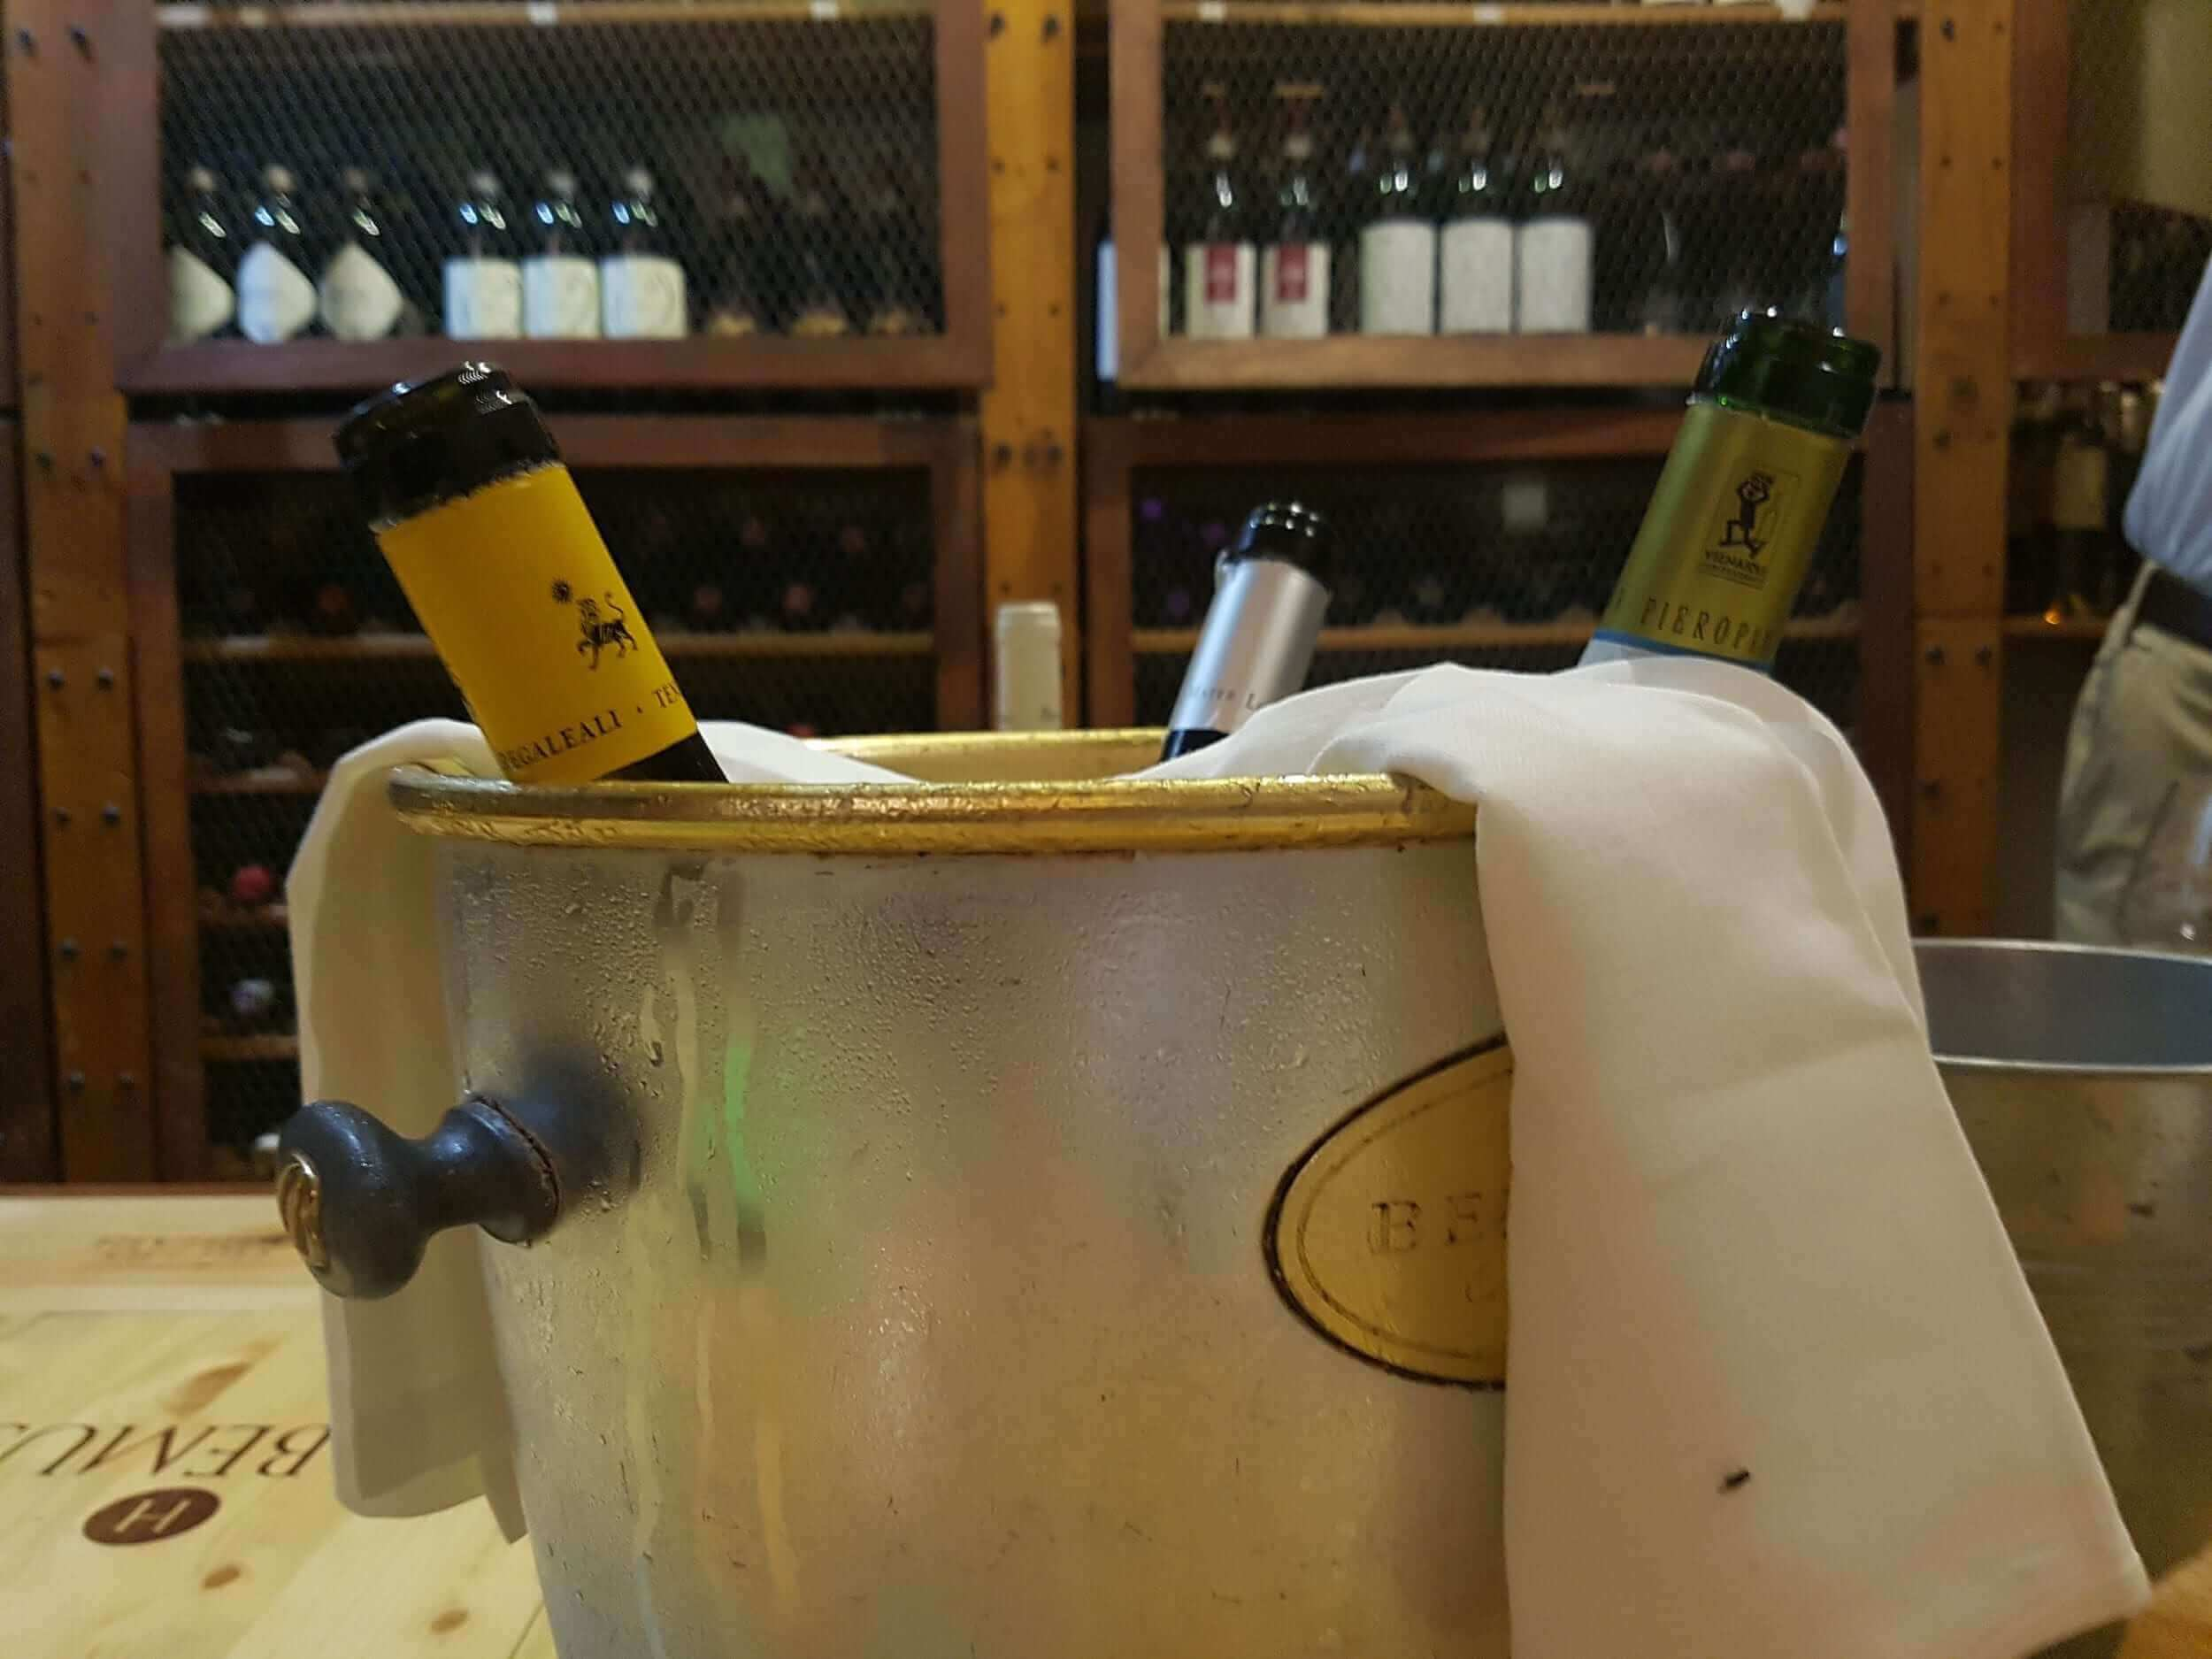 bucket of ice with prosecco bottles inside